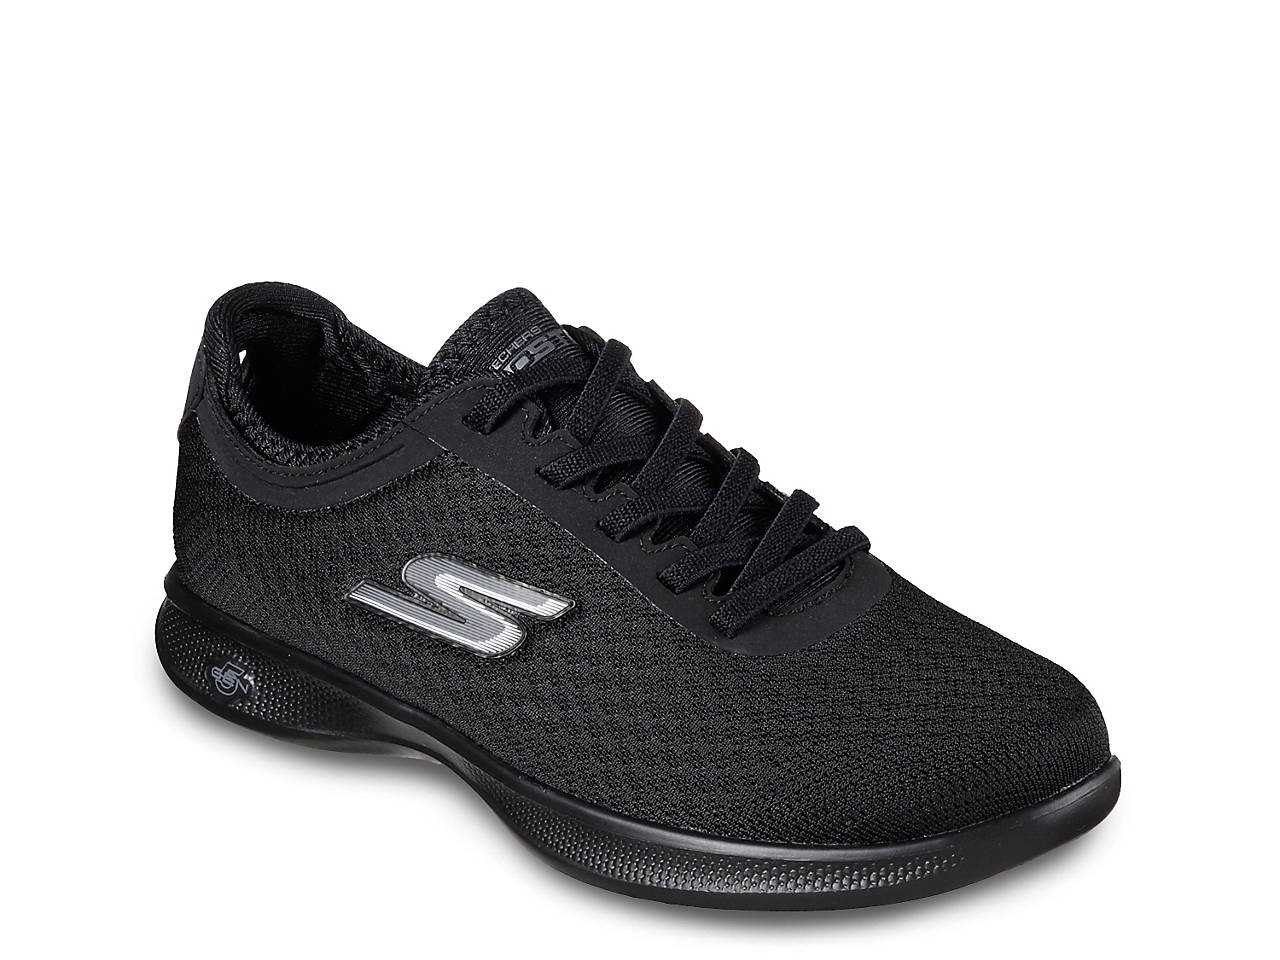 4082d9187568 Skechers Go Step Lite Sneaker - Women s Women s Shoes